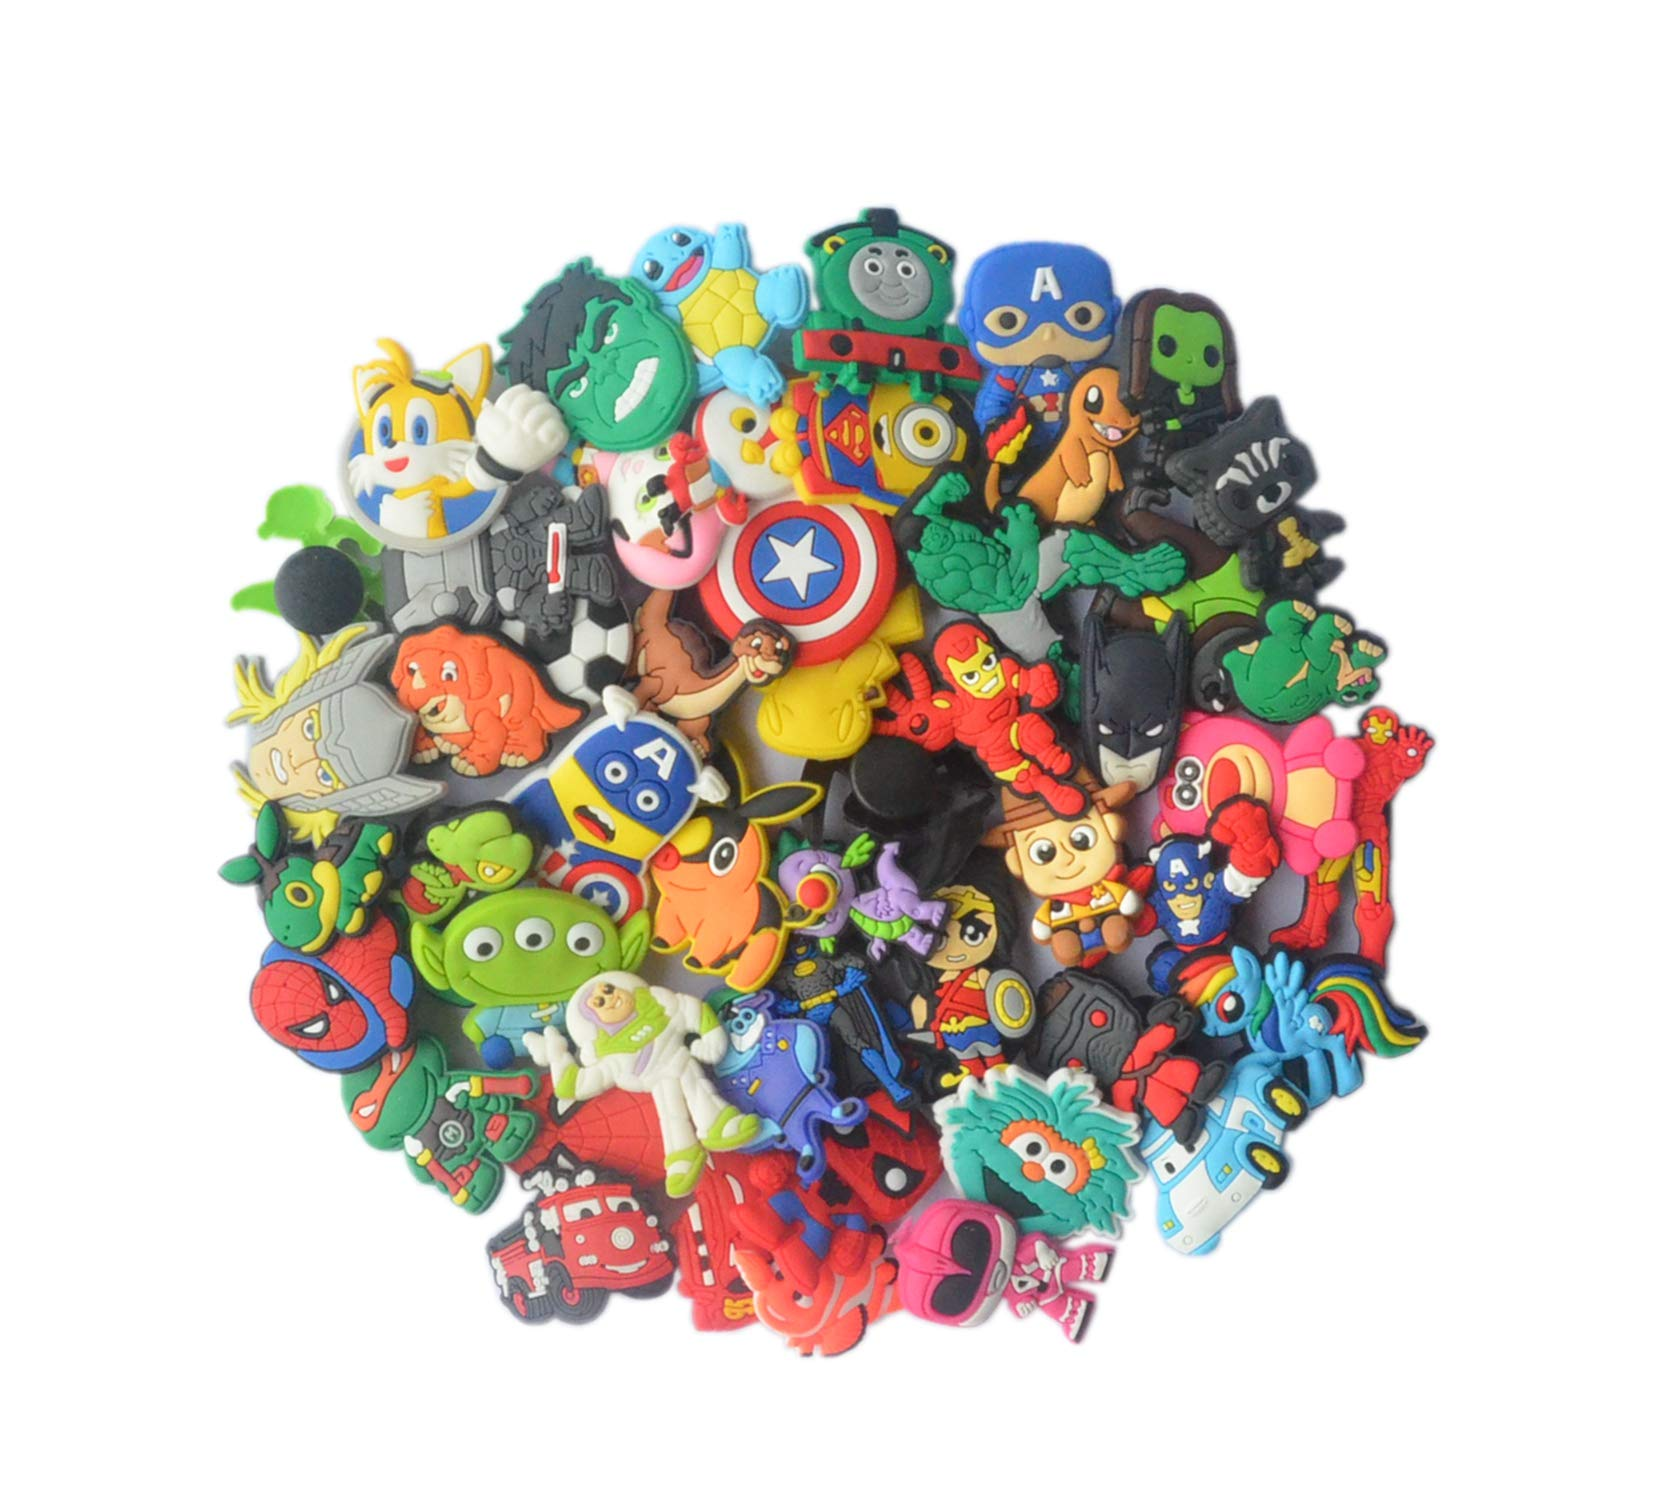 e2f9a890d Lot of 50 PVC Different Shoe Charms for Croc   Jibbitz Bands ...